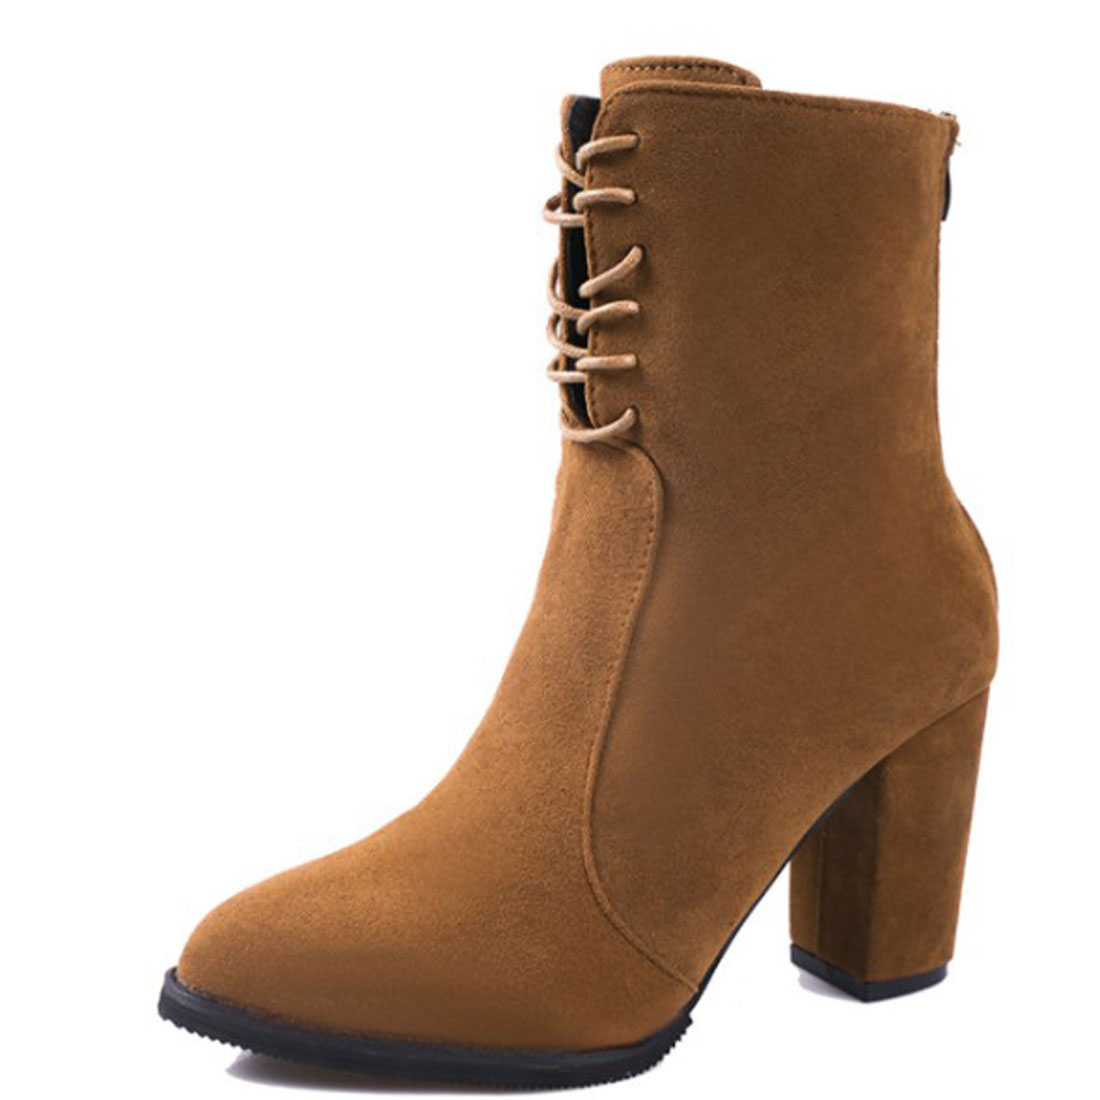 Boots For Women   Womens Boots   PrettyLittleThing